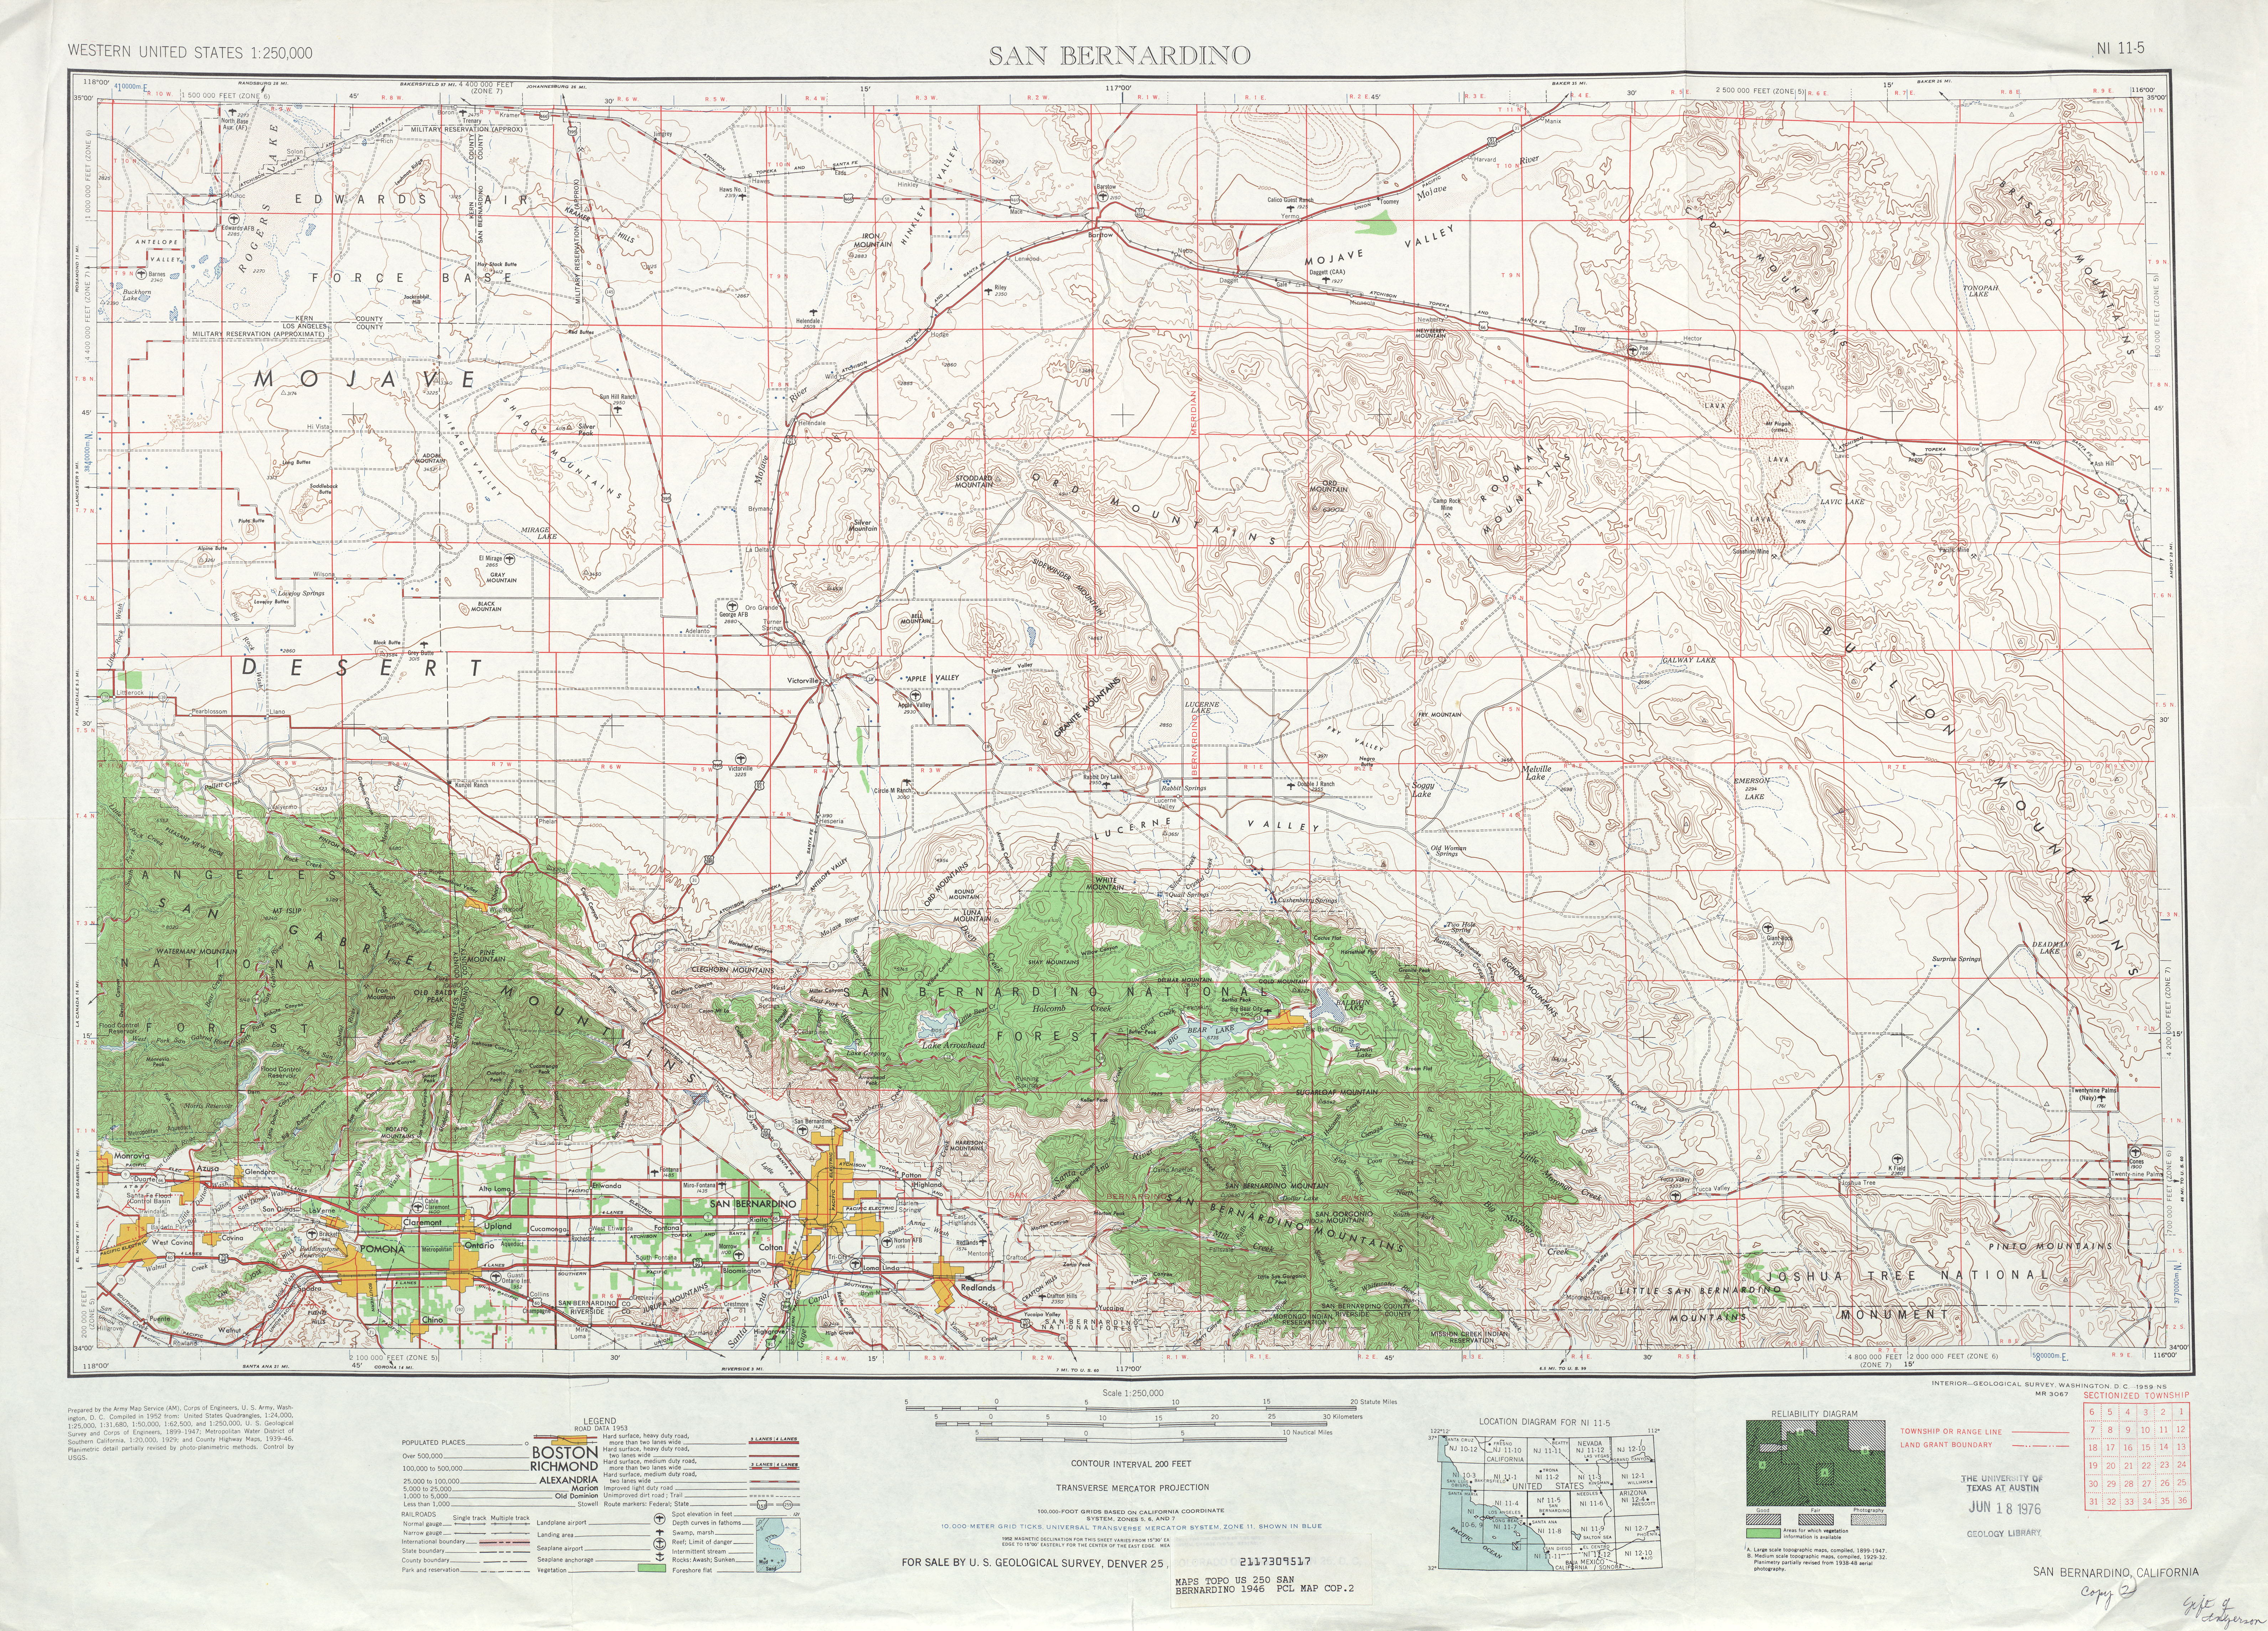 Wrightwood Area Maps - Denver Circled On Us Map